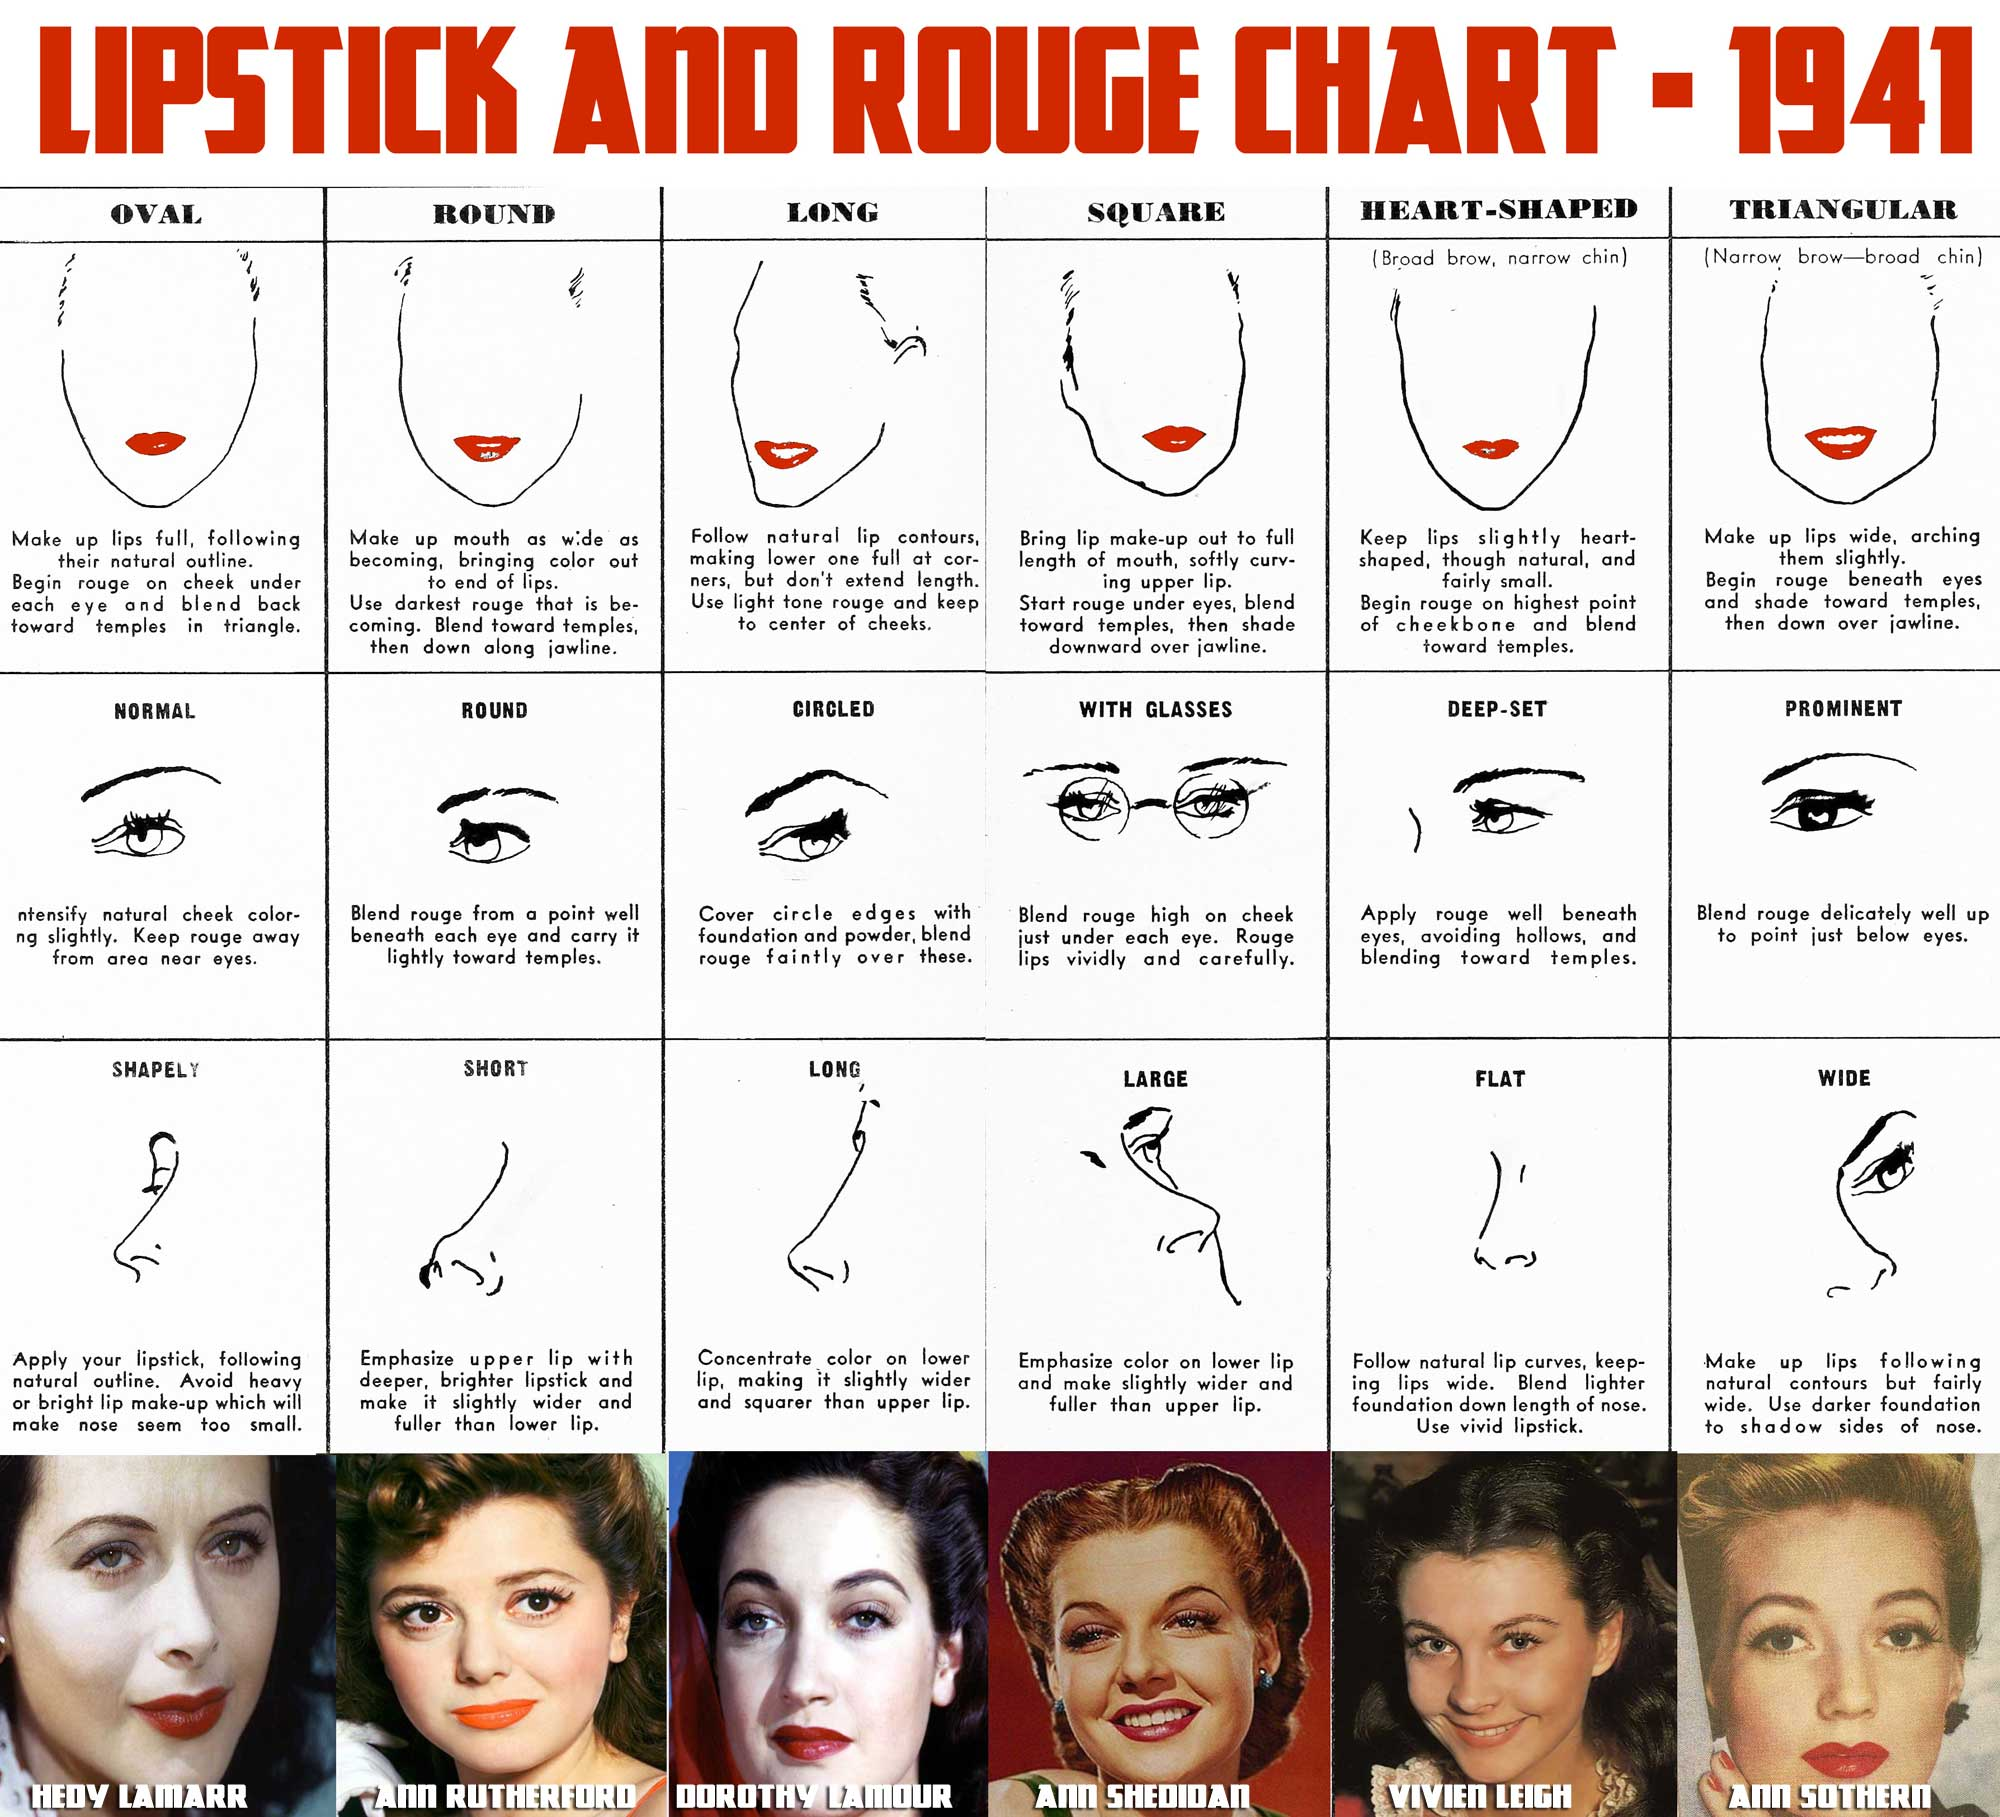 LIPSTICK-AND-ROUGE-CHART-1941